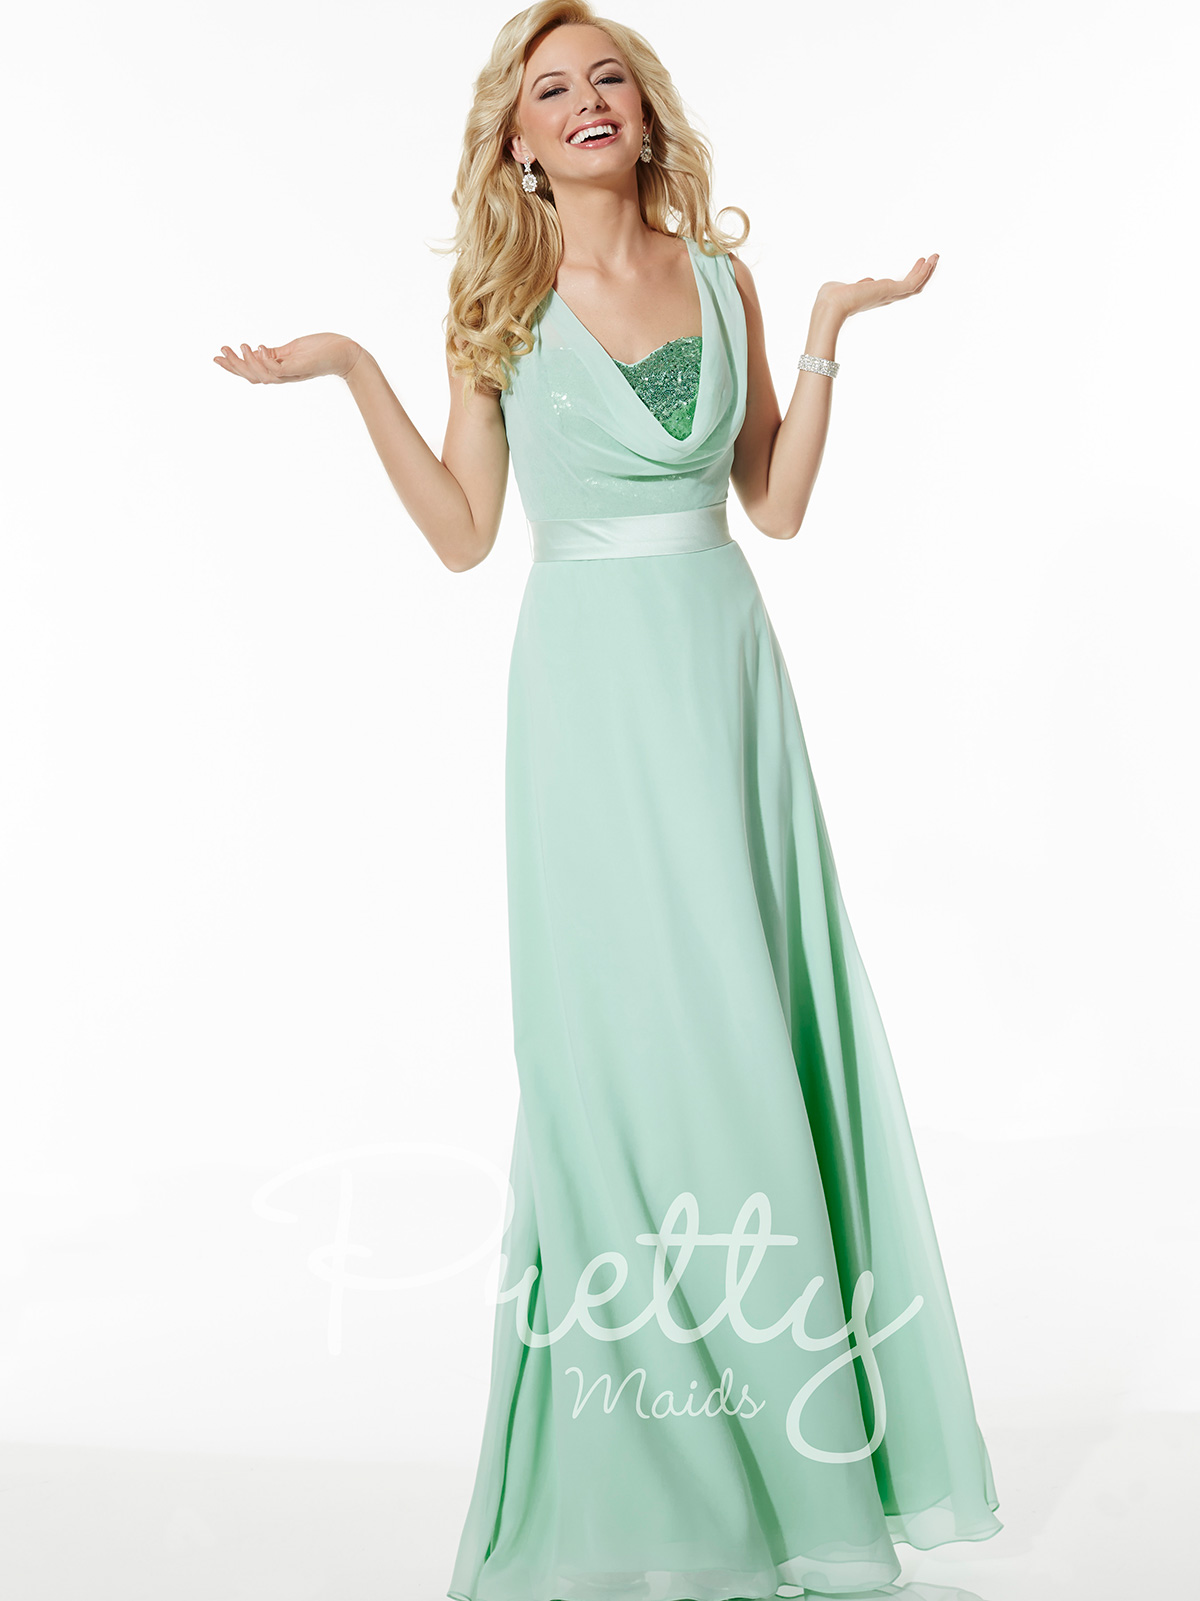 Pretty Maids Bridesmaid Dress 22617: DimitraDesigns.com